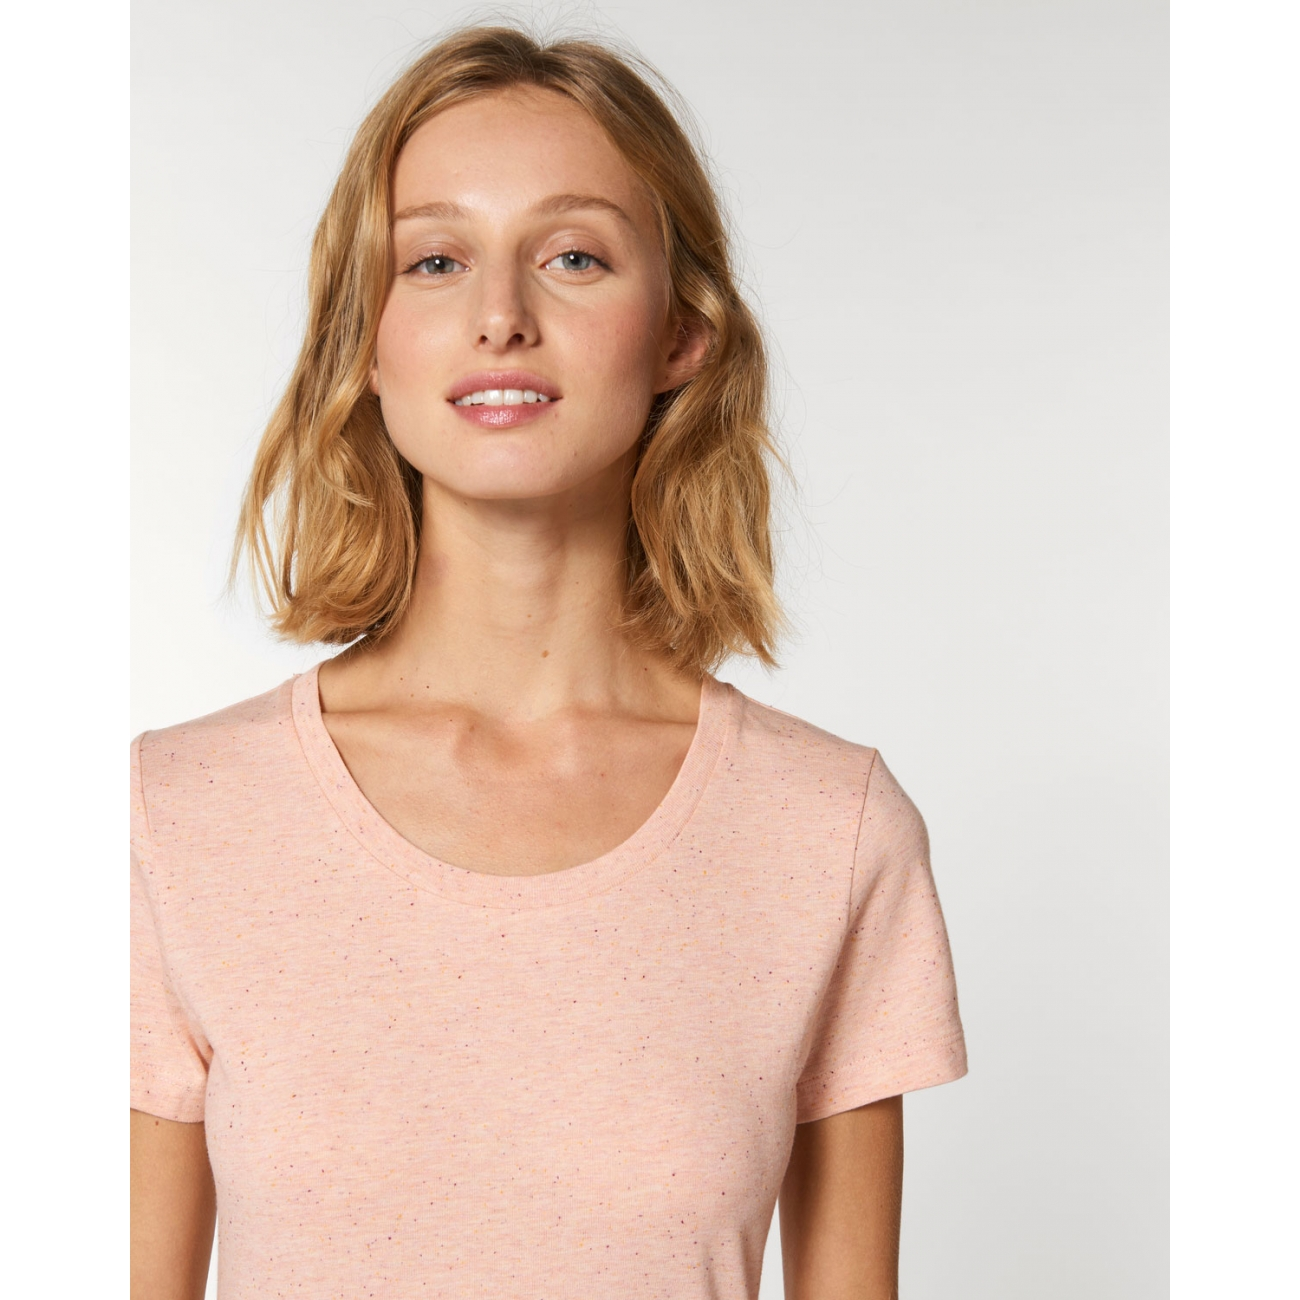 https://tee-shirt-bio.com/10220-thickbox_default/tee-shirt-femme-coton-bio-coupe-feminine-et-cintree-rose-mandarine-chine.jpg